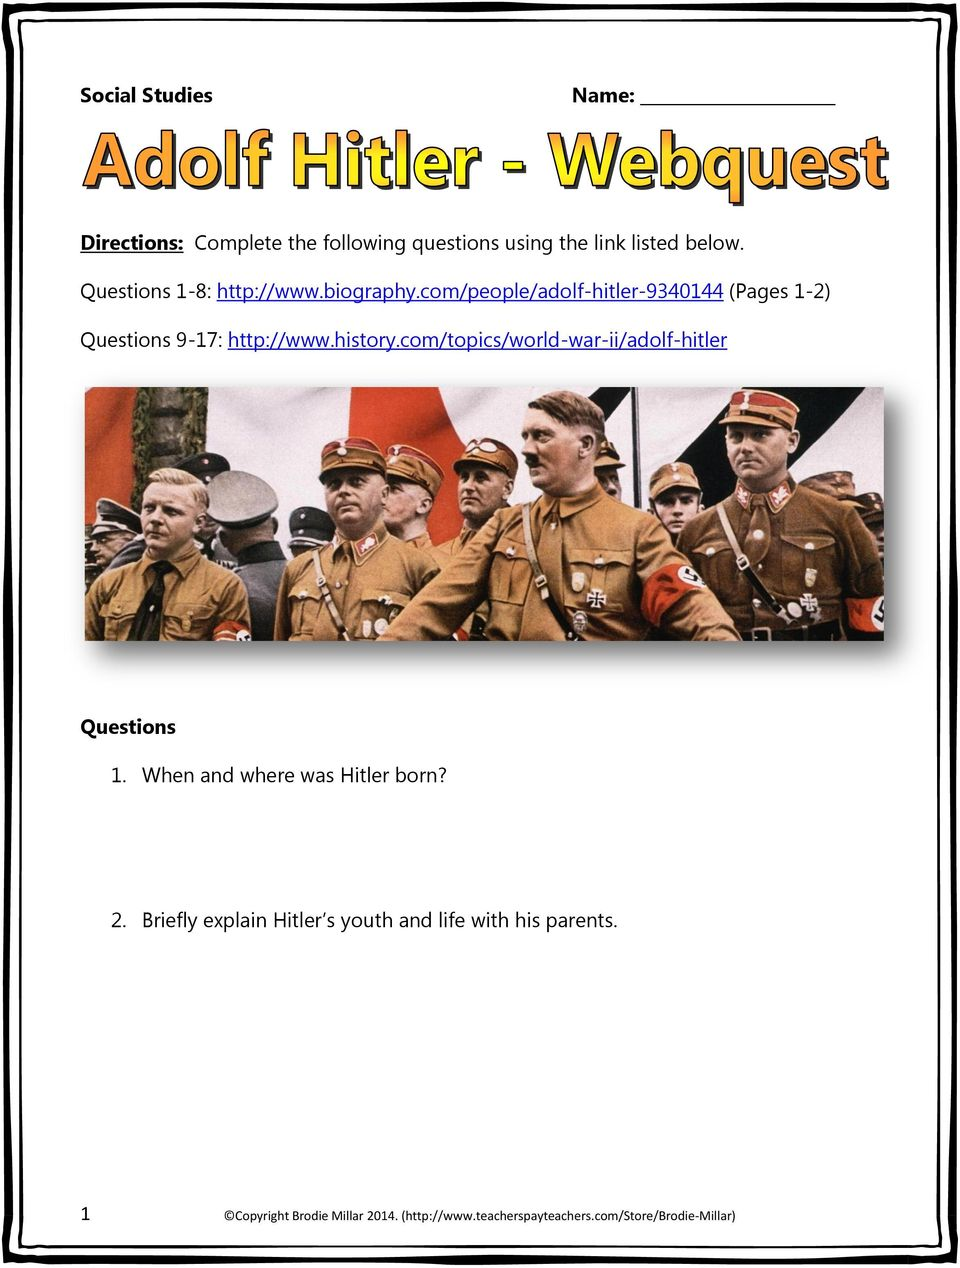 history.com/topics/world-war-ii/adolf-hitler Questions 1. When and where was Hitler born? 2.